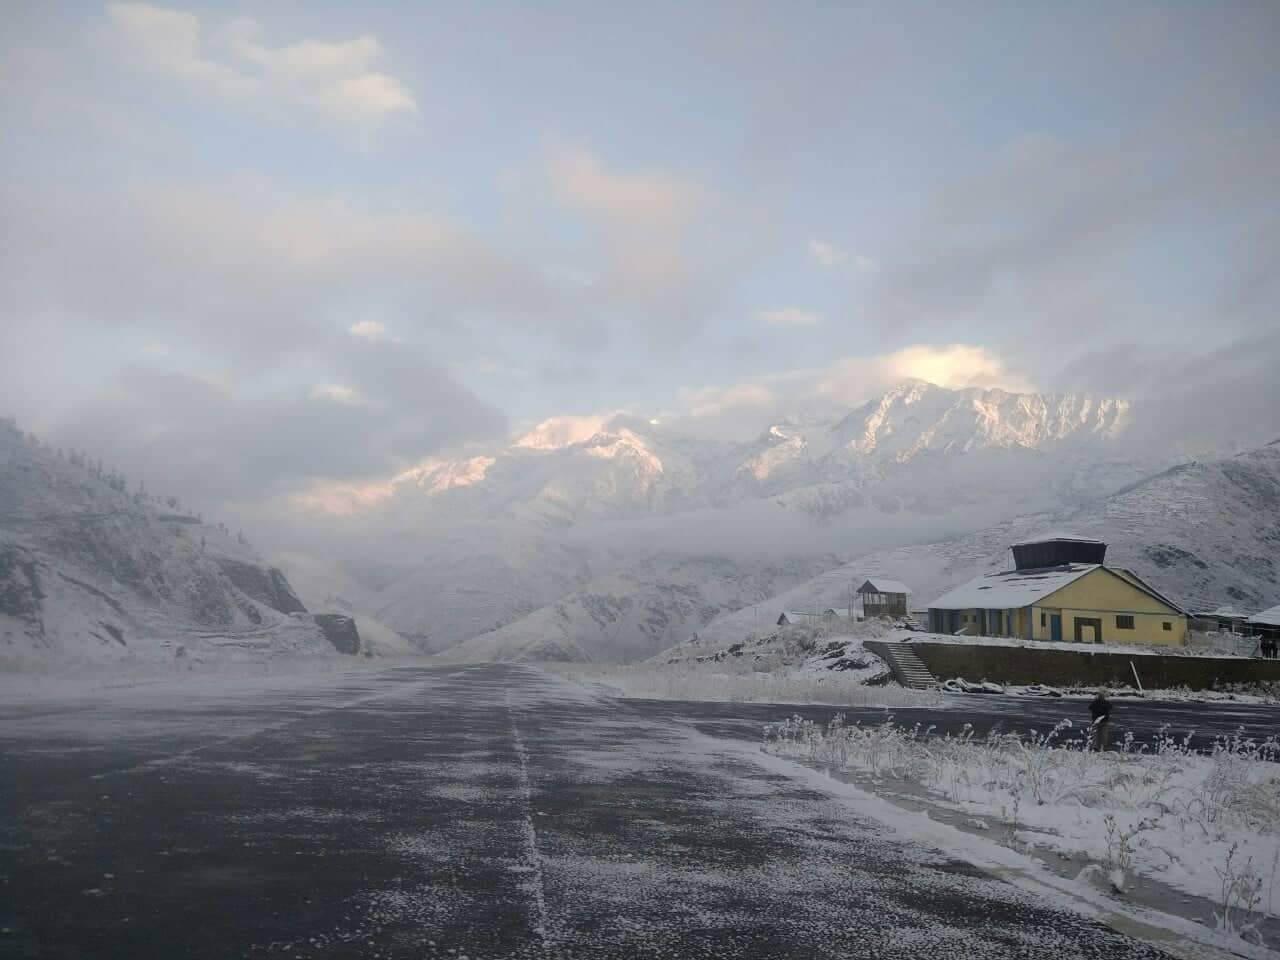 Dolpo's Jufal airfield after snowfall